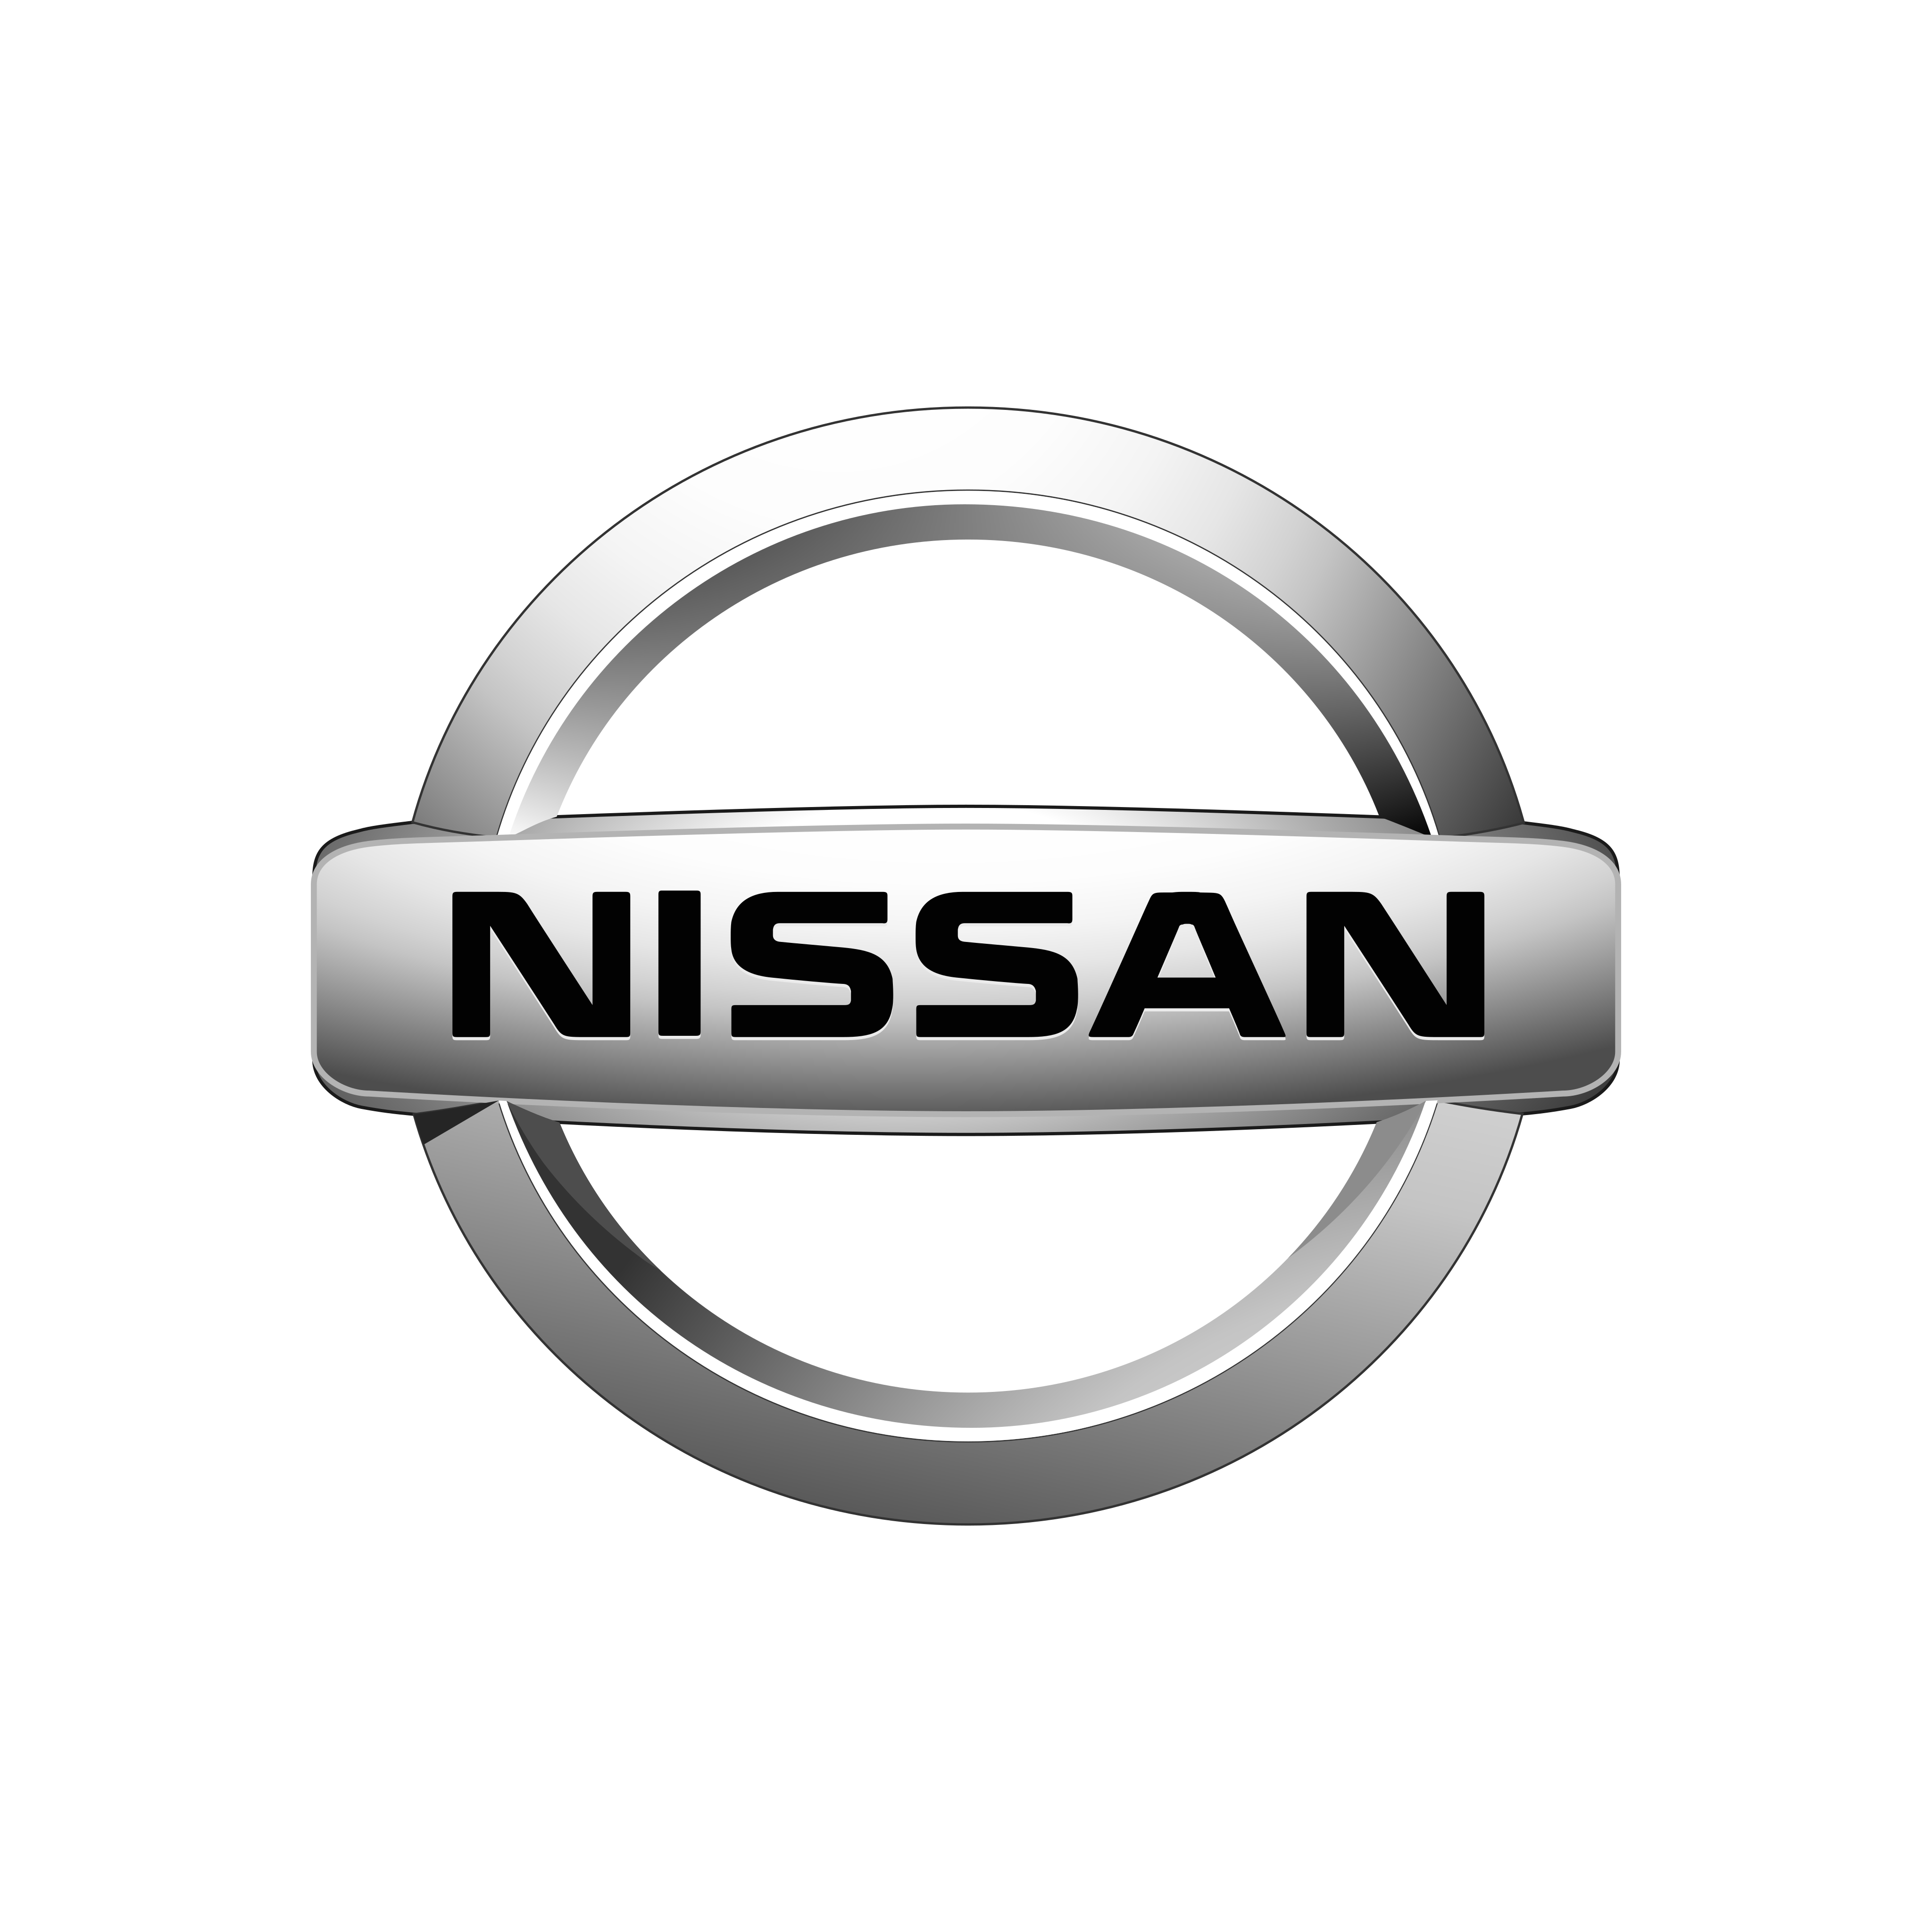 Nissan Logo - Png And Vector - Logo Download - Nissan Logo PNG